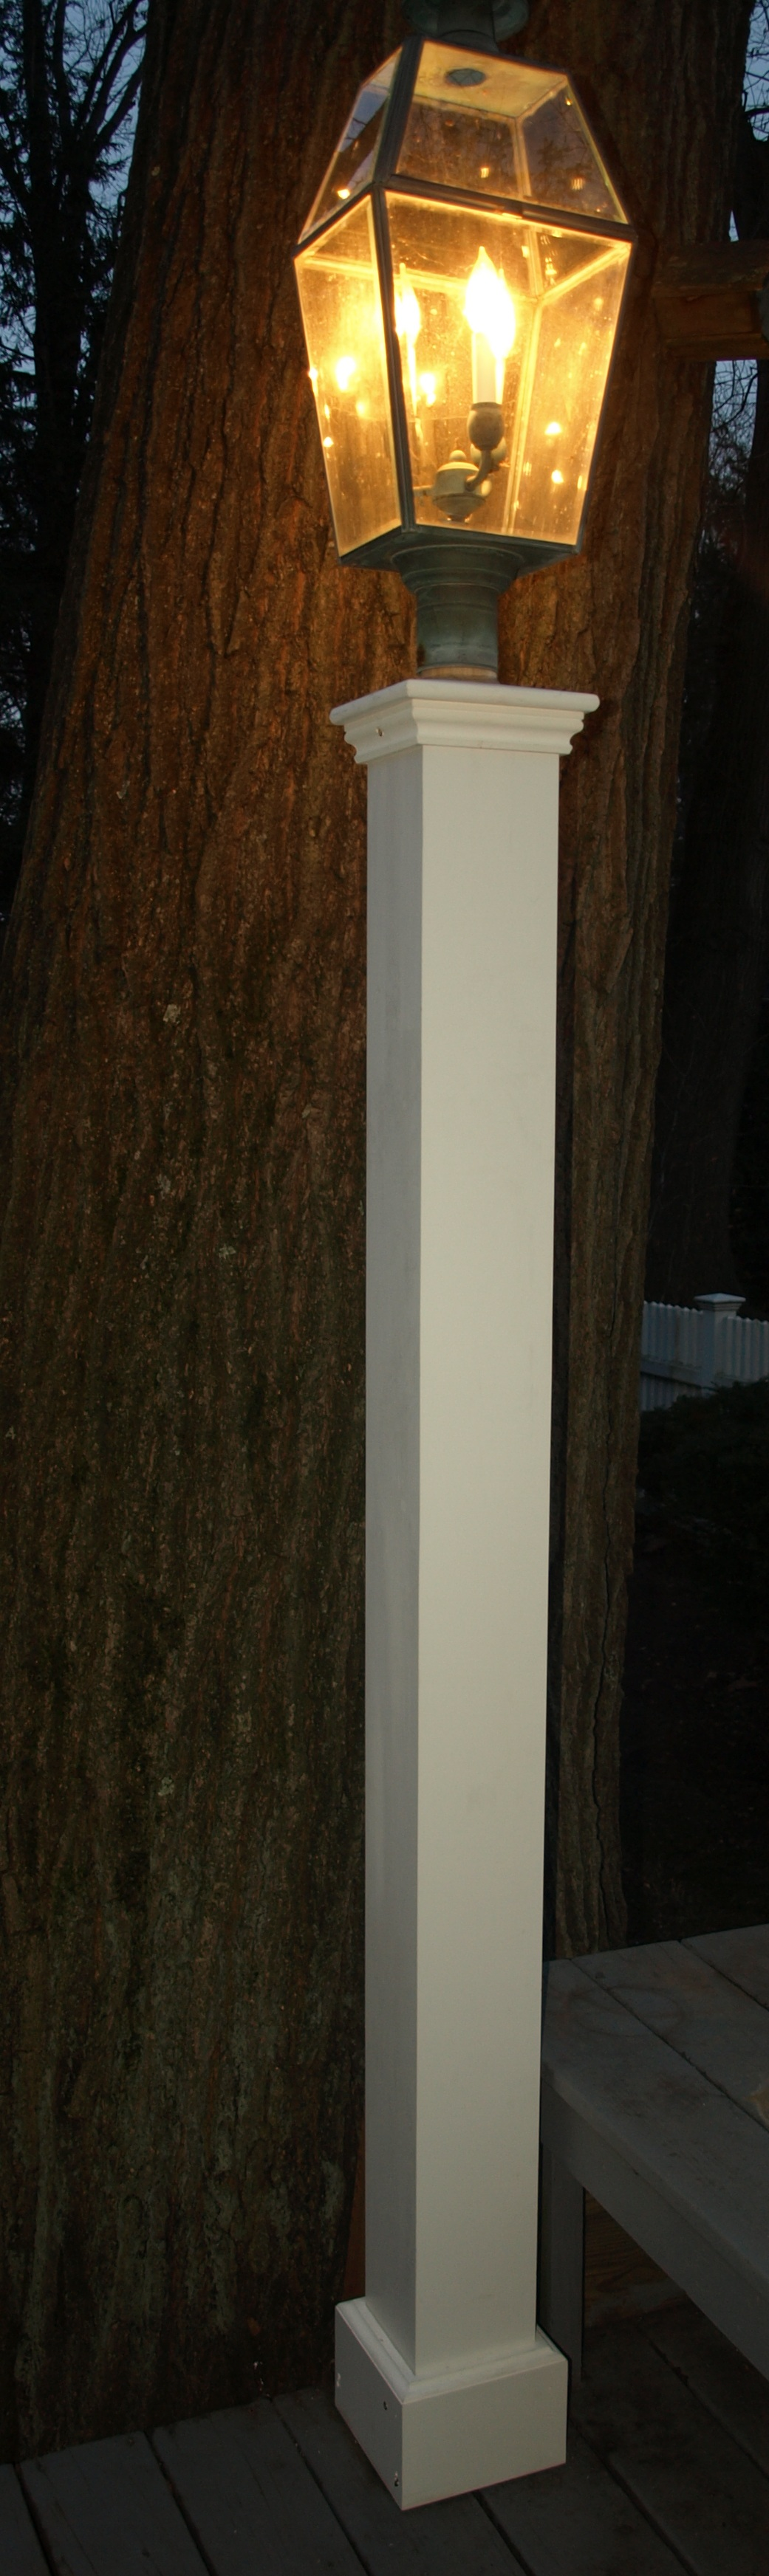 Wood outdoor lamp post - And Now Two New Classsic Azek Cellular Pvc Synthetic Wood Lantern Posts In Our Largest Size 7 1 2 X 7 1 2 X 76 Tall Both New Never Rot Azek Lamp